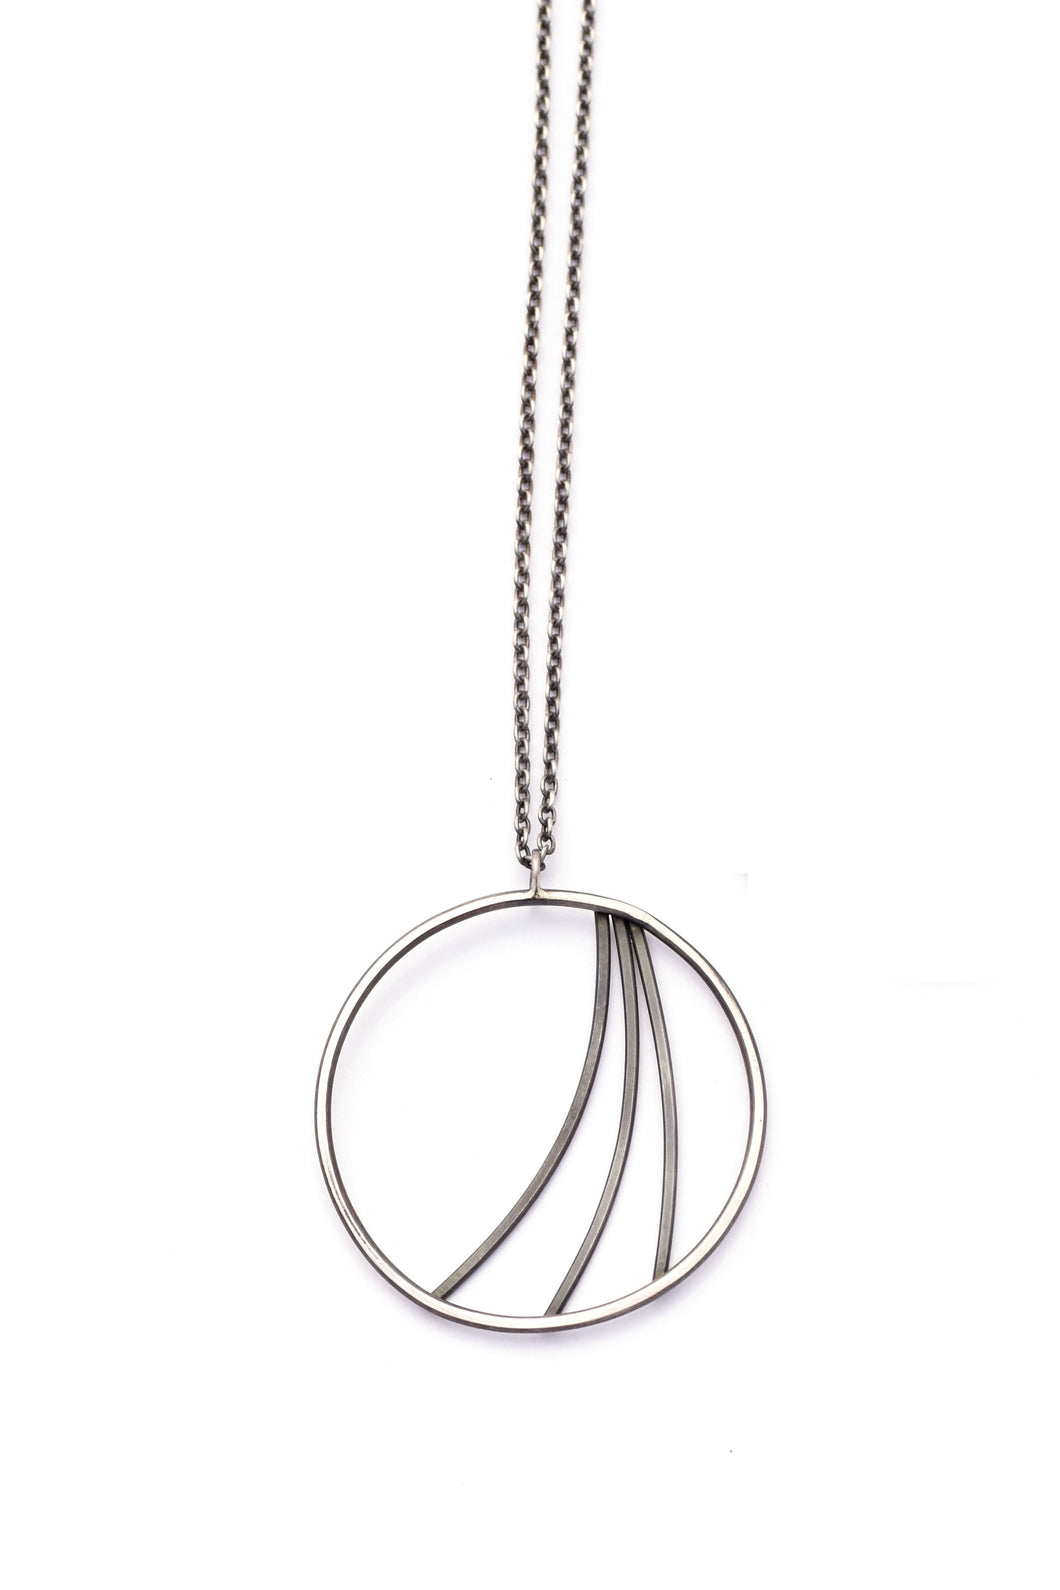 Geometric Layering Necklace, Swoosh